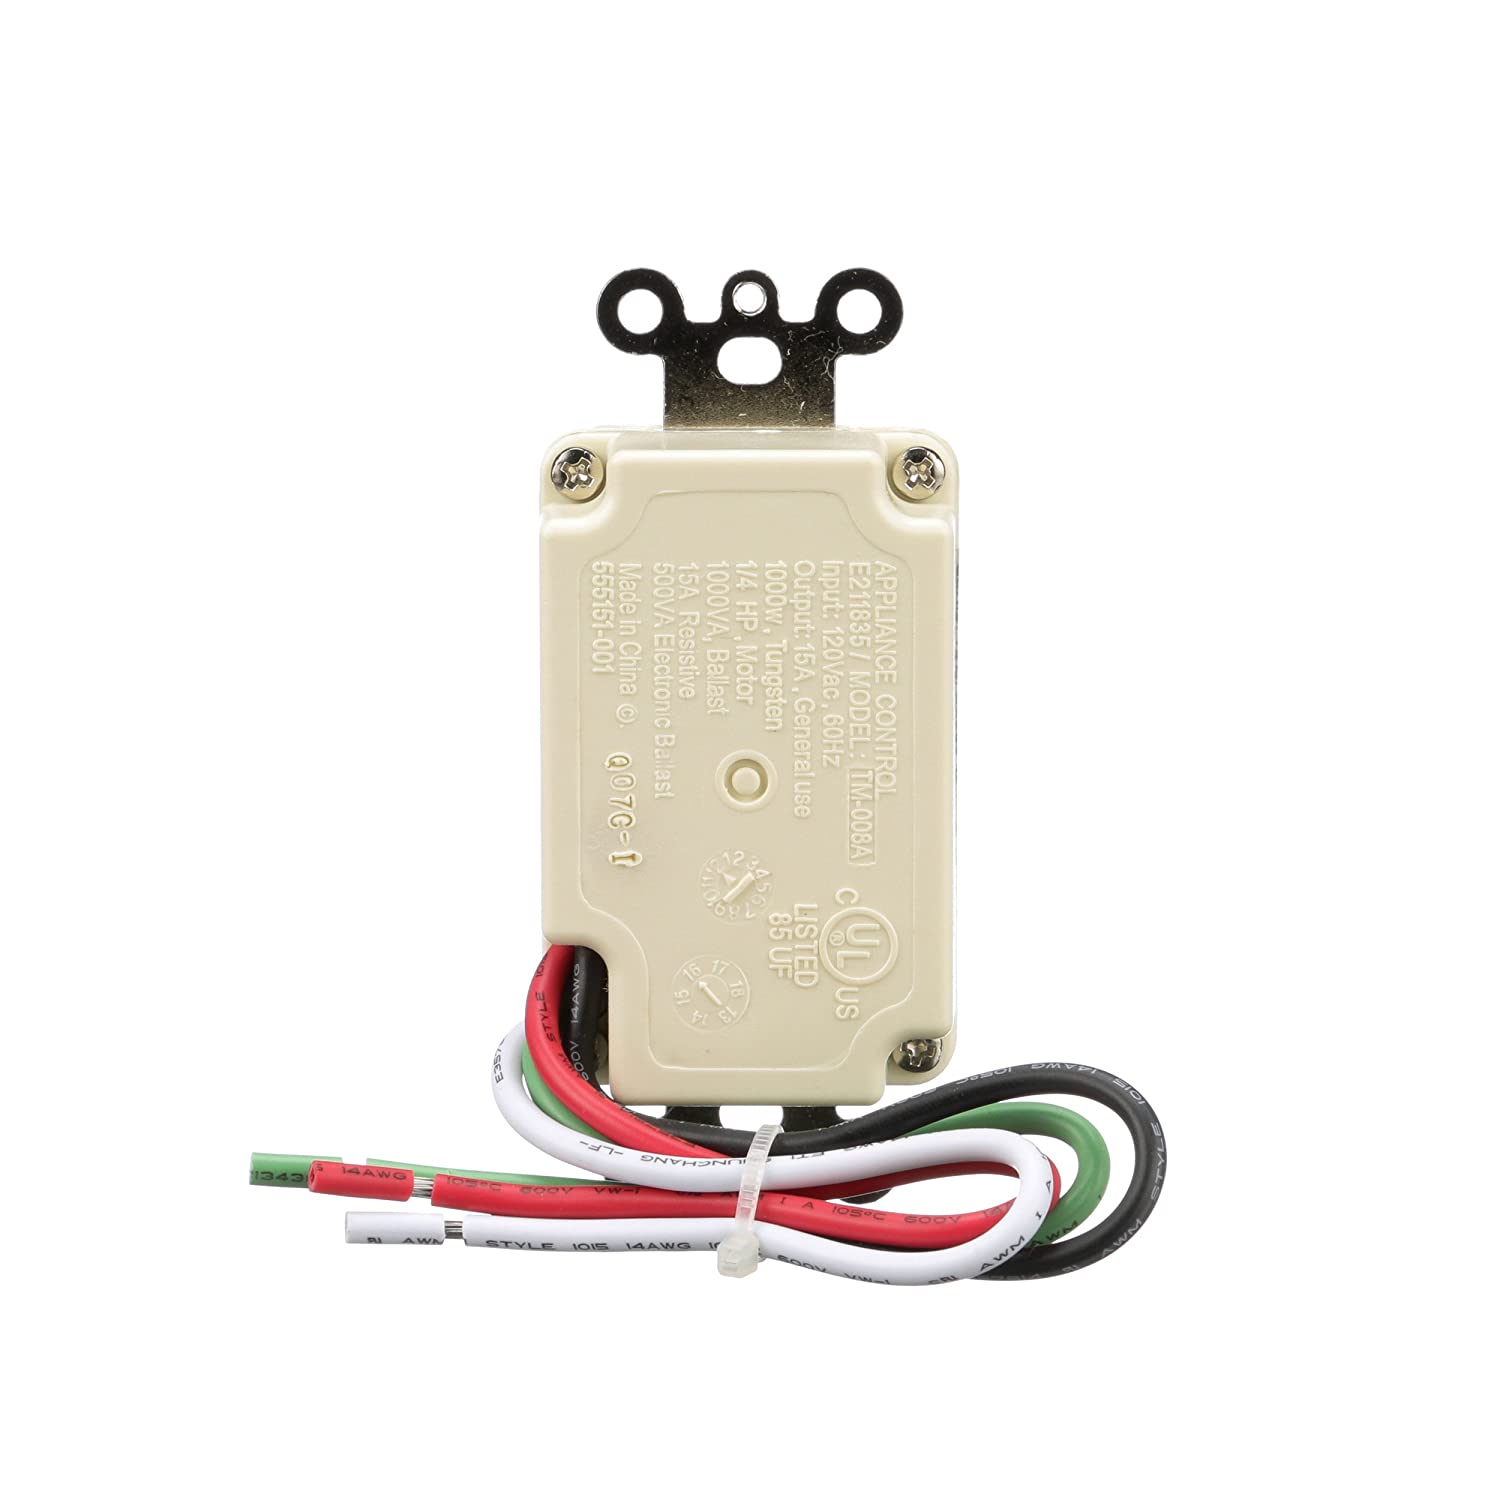 Woods 59720wd In Wall 30 Minute Digital Countdown Timer Light Wiring The Home Replacing Switch With Gfci Combo Almond Bath Fan